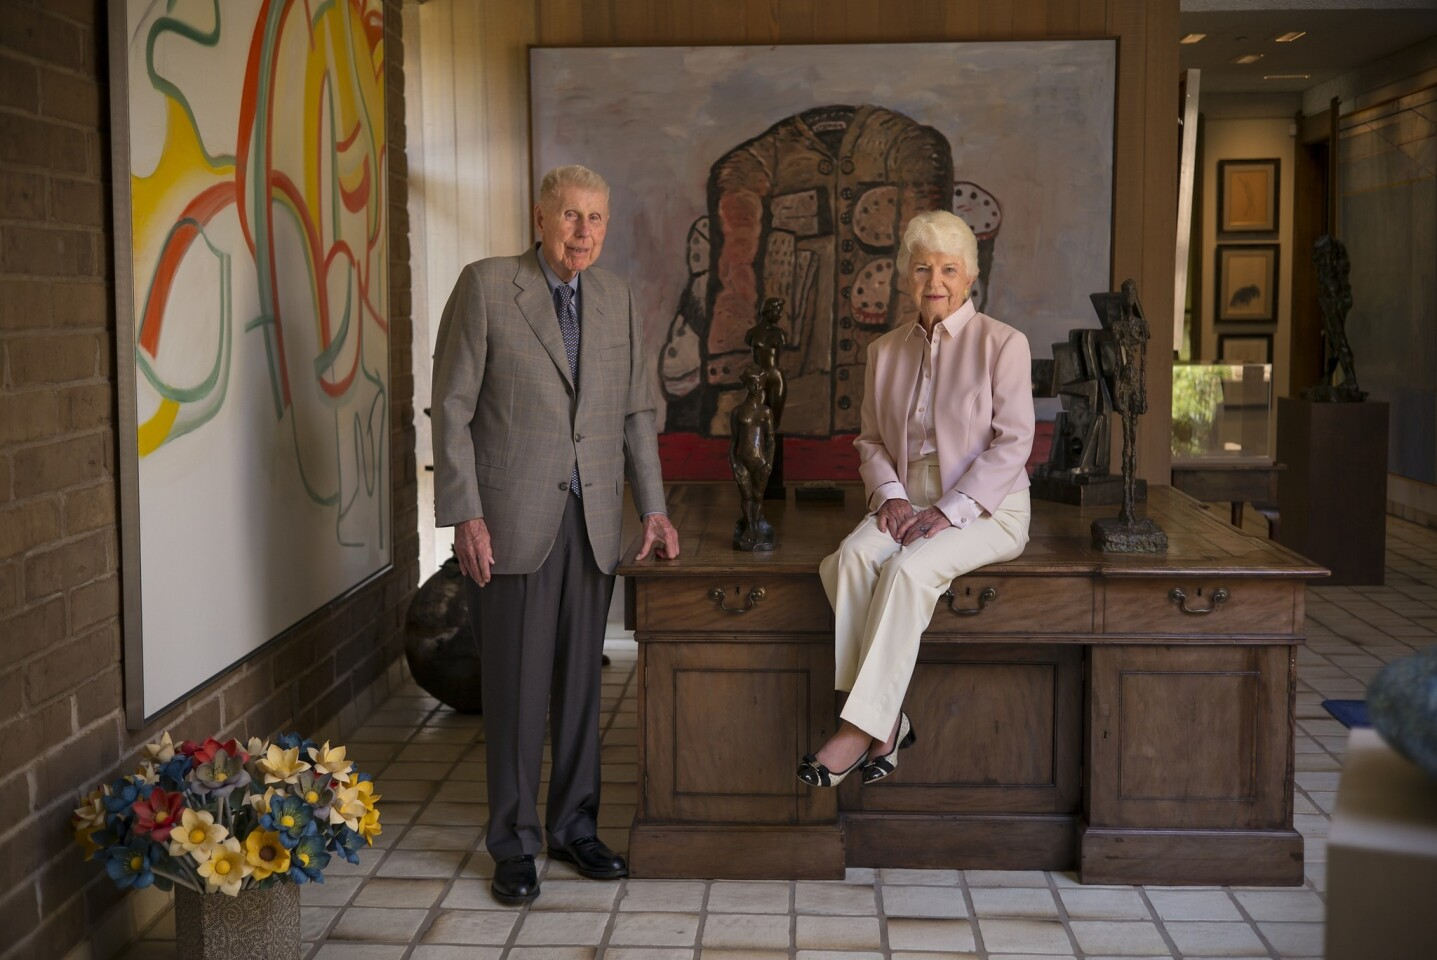 """Harry """"Hunk"""" and Mary """"Moo"""" Anderson pose in the foyer of their home with two paintings in the background. The Willem DeKooning, left, and Philip Guston, directly behind them, are both part of a collection they are donating to Stanford University."""